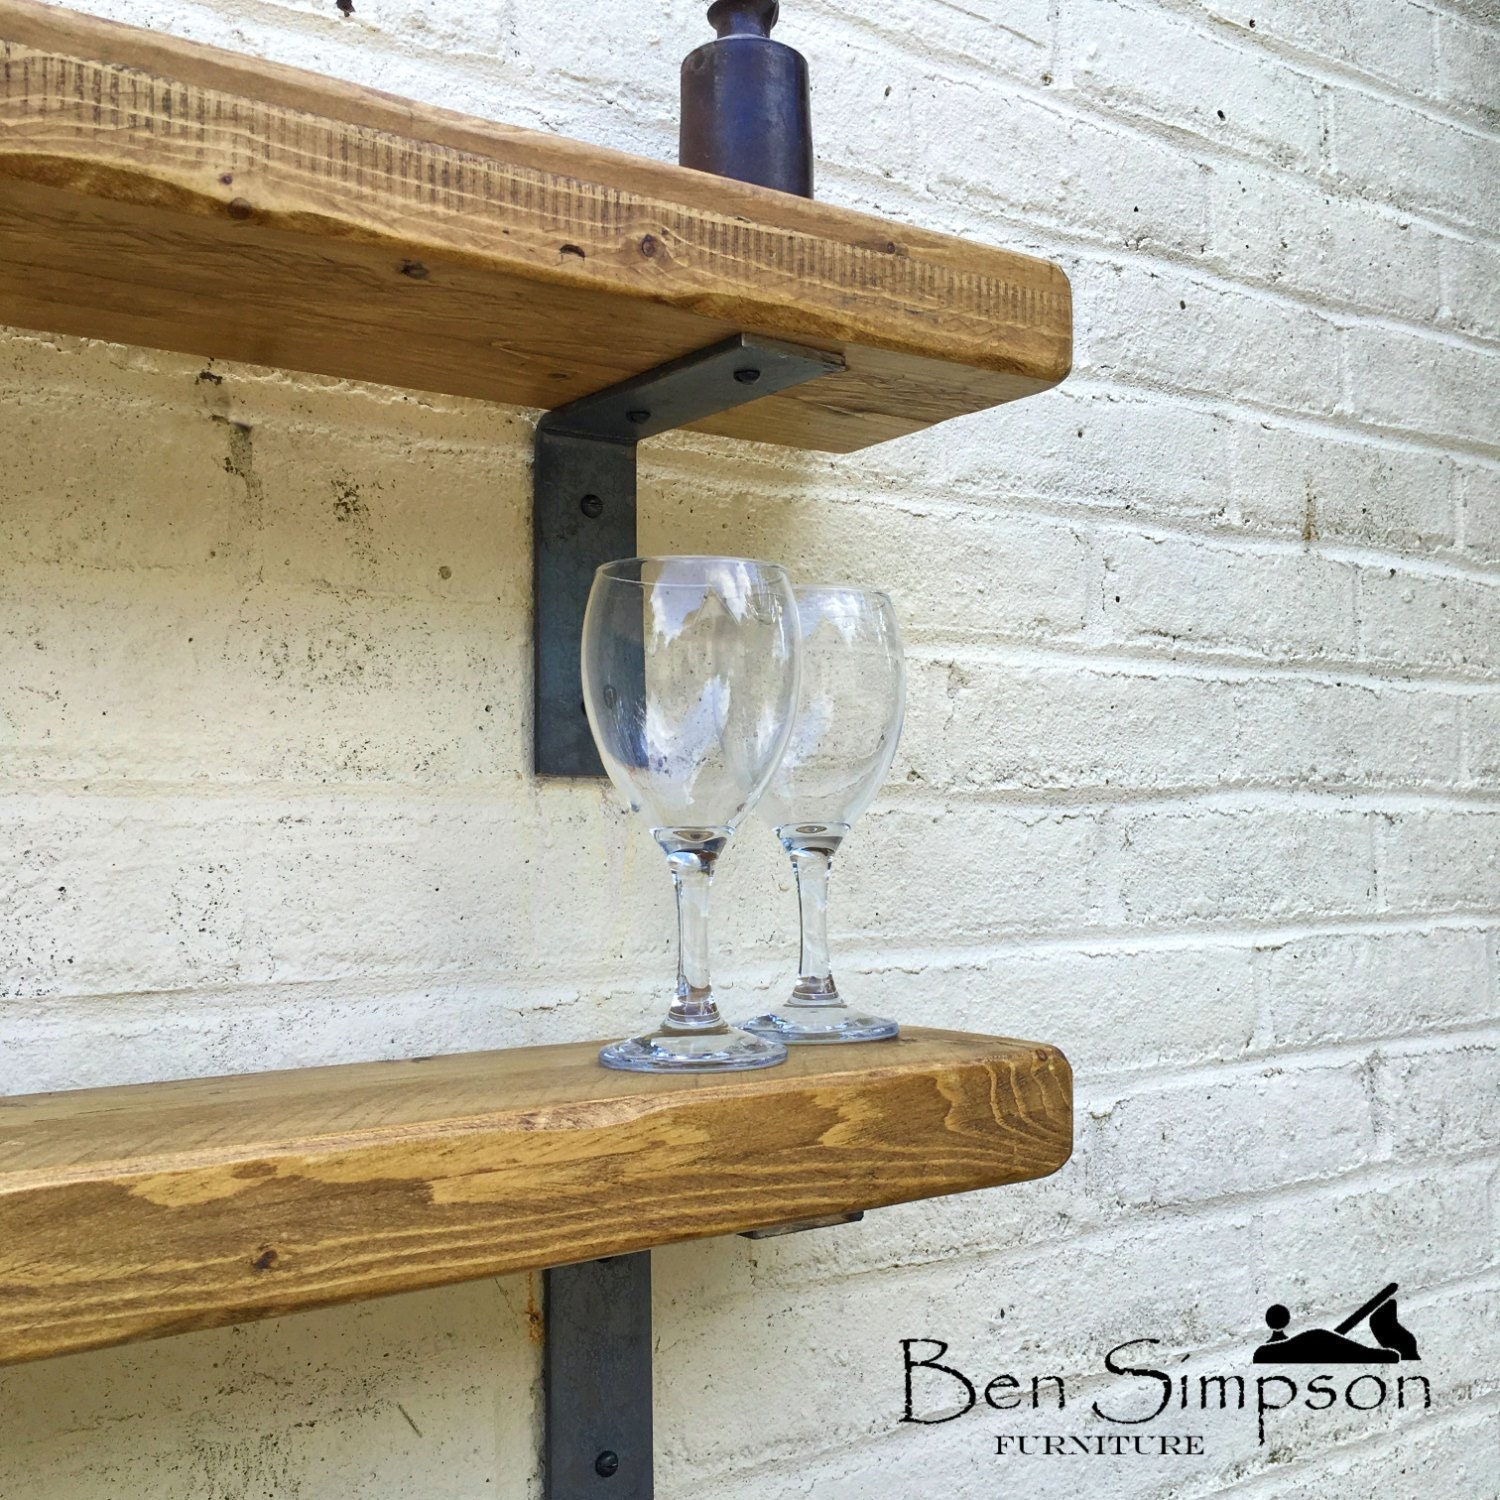 Rustic Shelves Handcrafted With Industrial Metal Shelf Brackets Using Solid  Wood   22cm Depth X 5cm Thickness   Ben Simpson Furniture